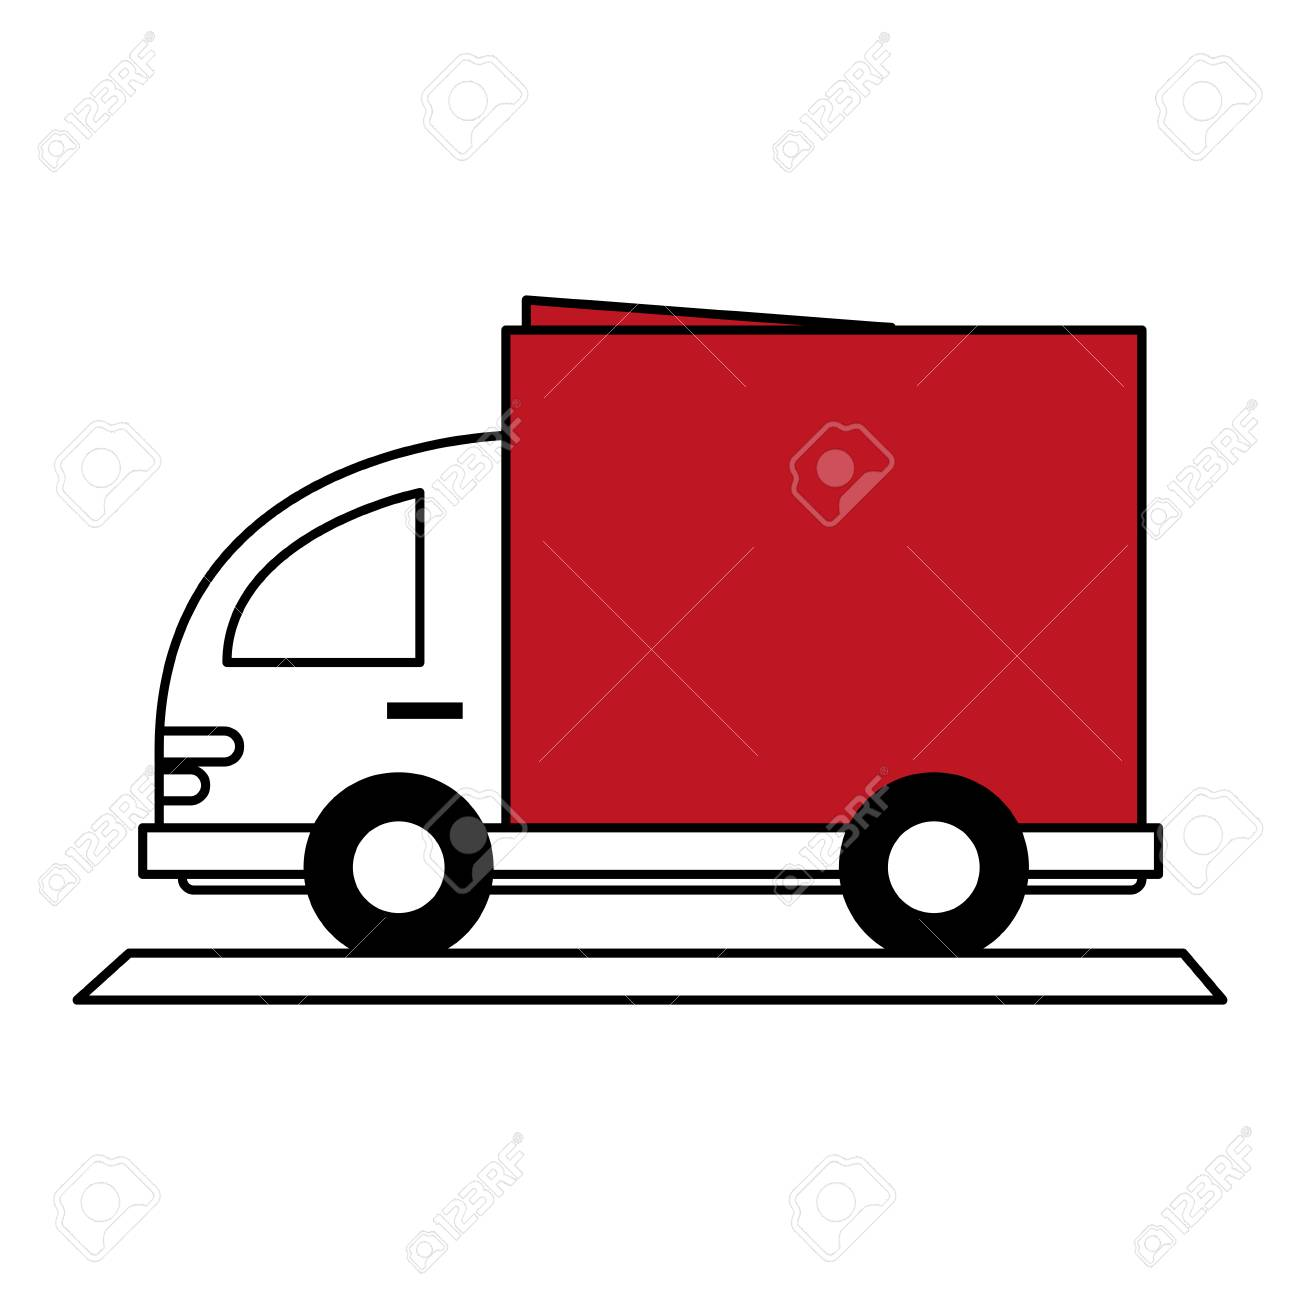 Color Silhouette Cartoon Small Transport Truck With Red Wagon